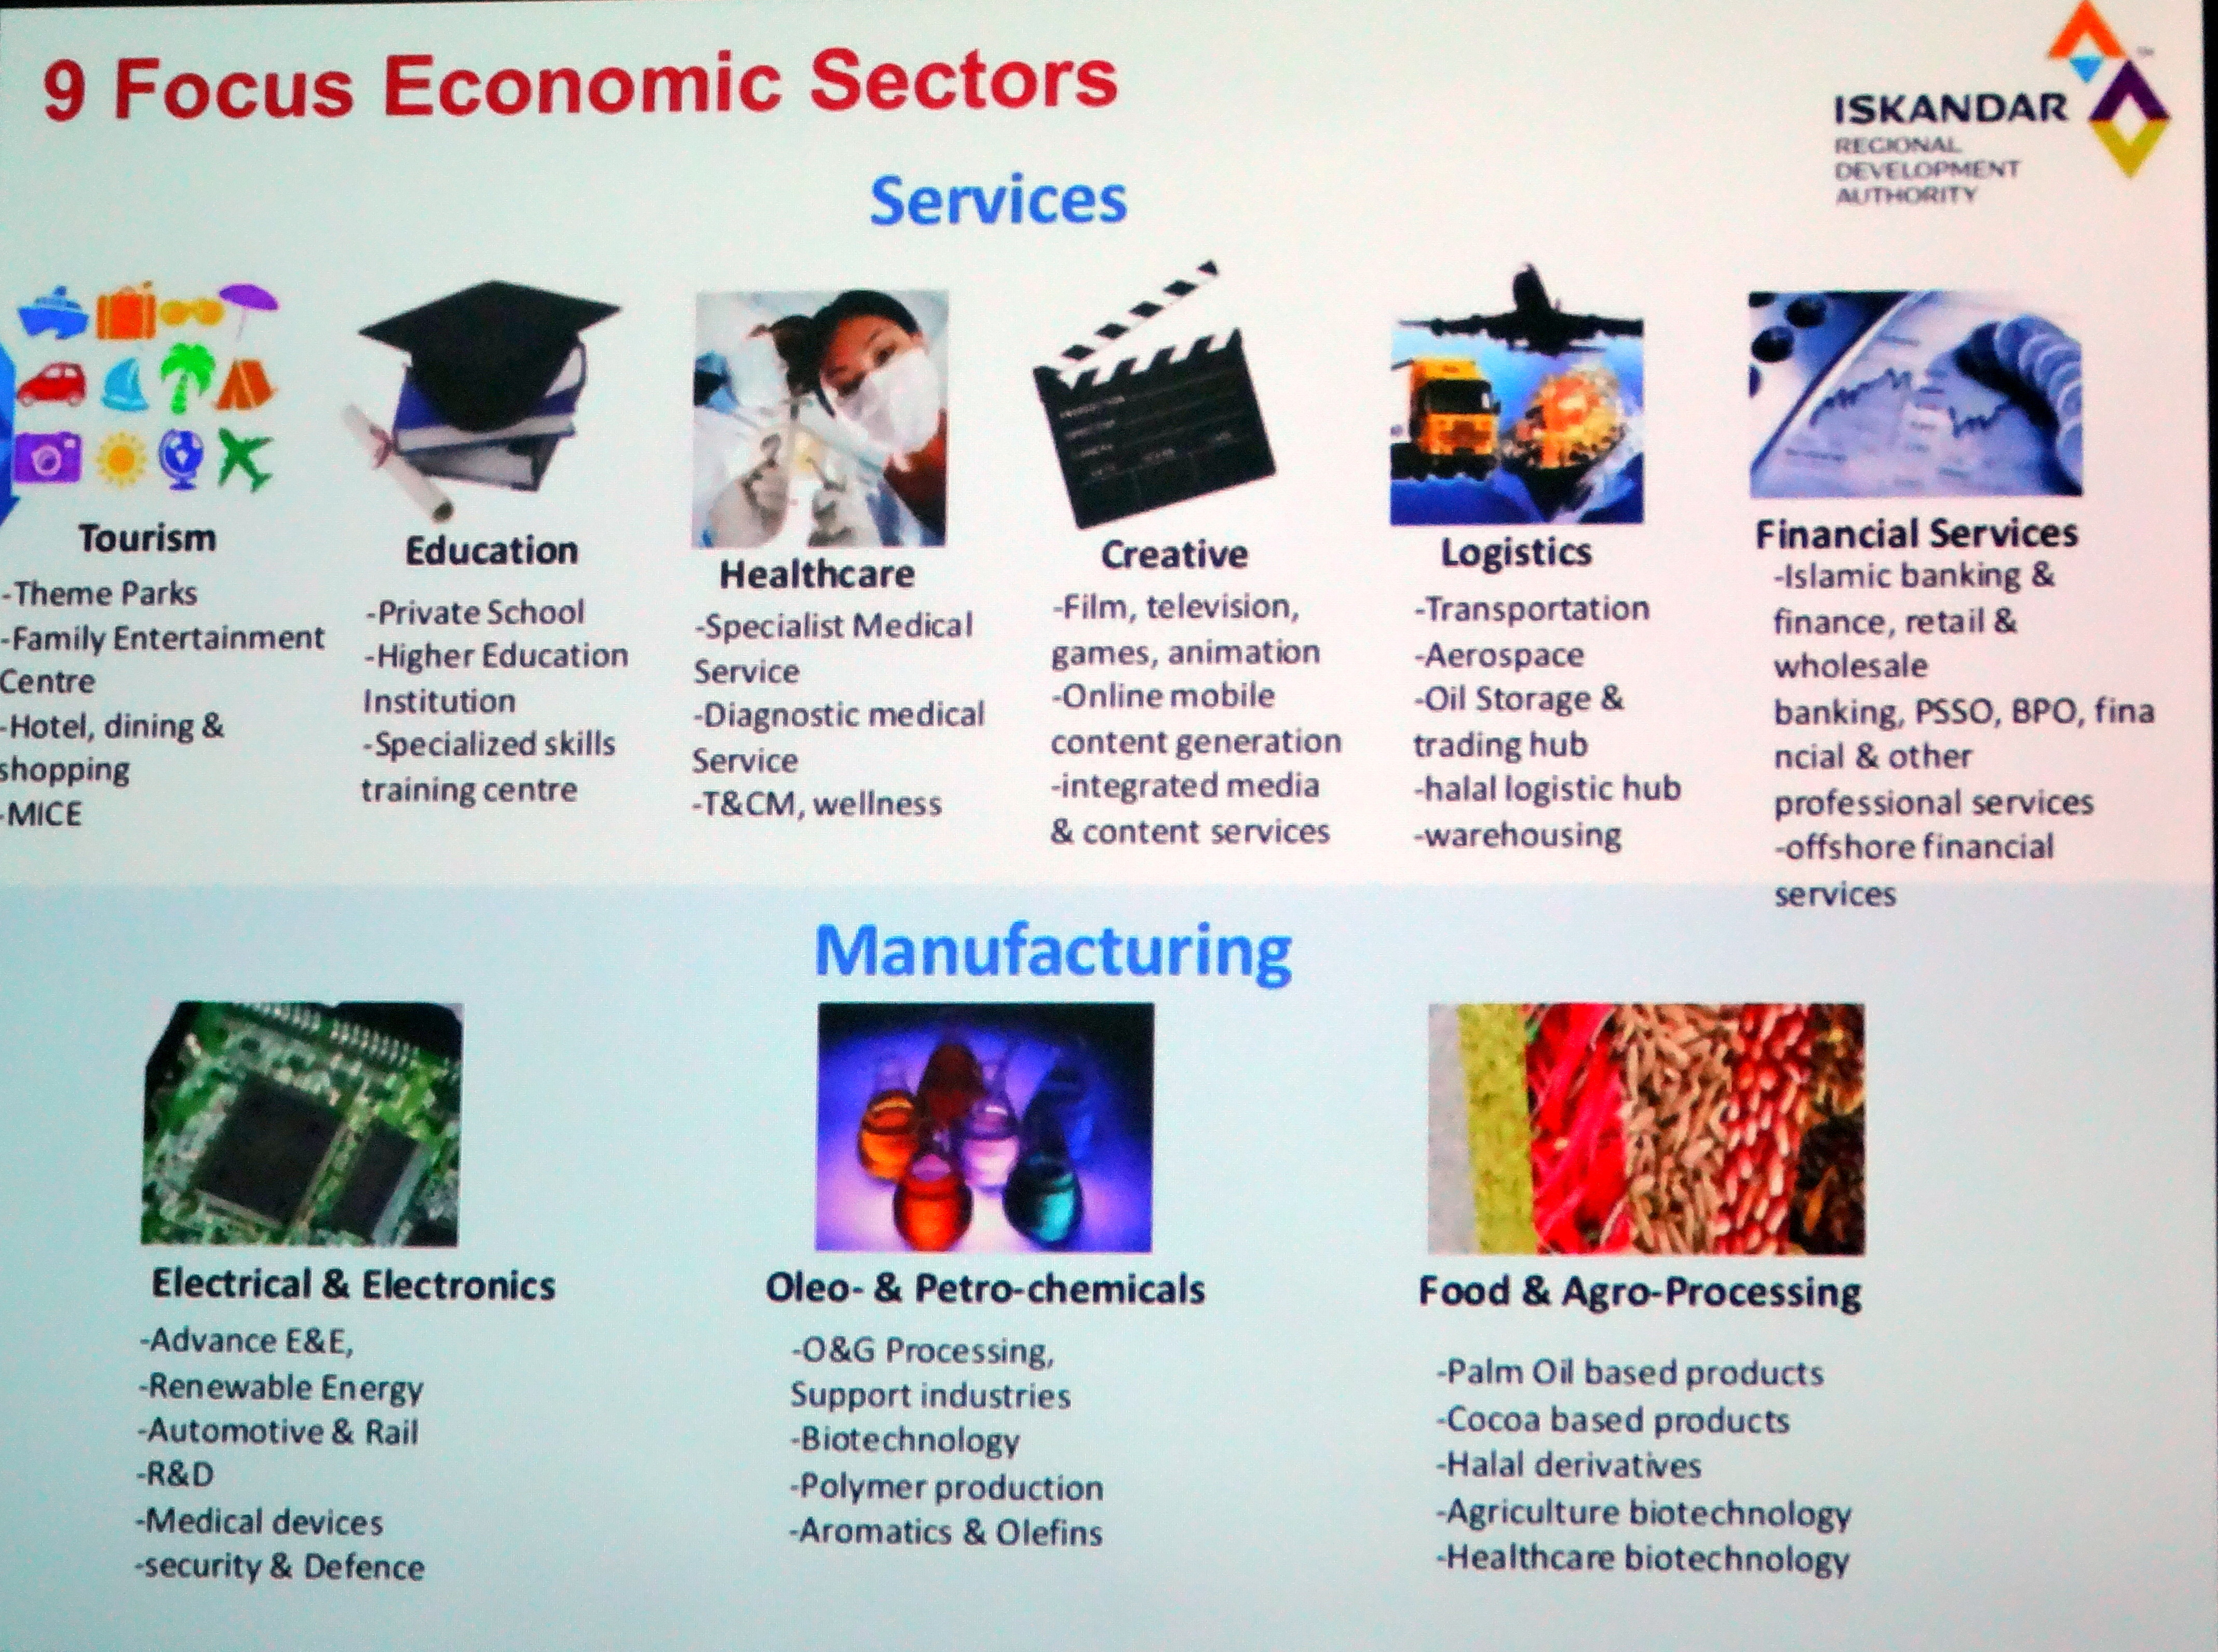 9 Focus Economic Sectors